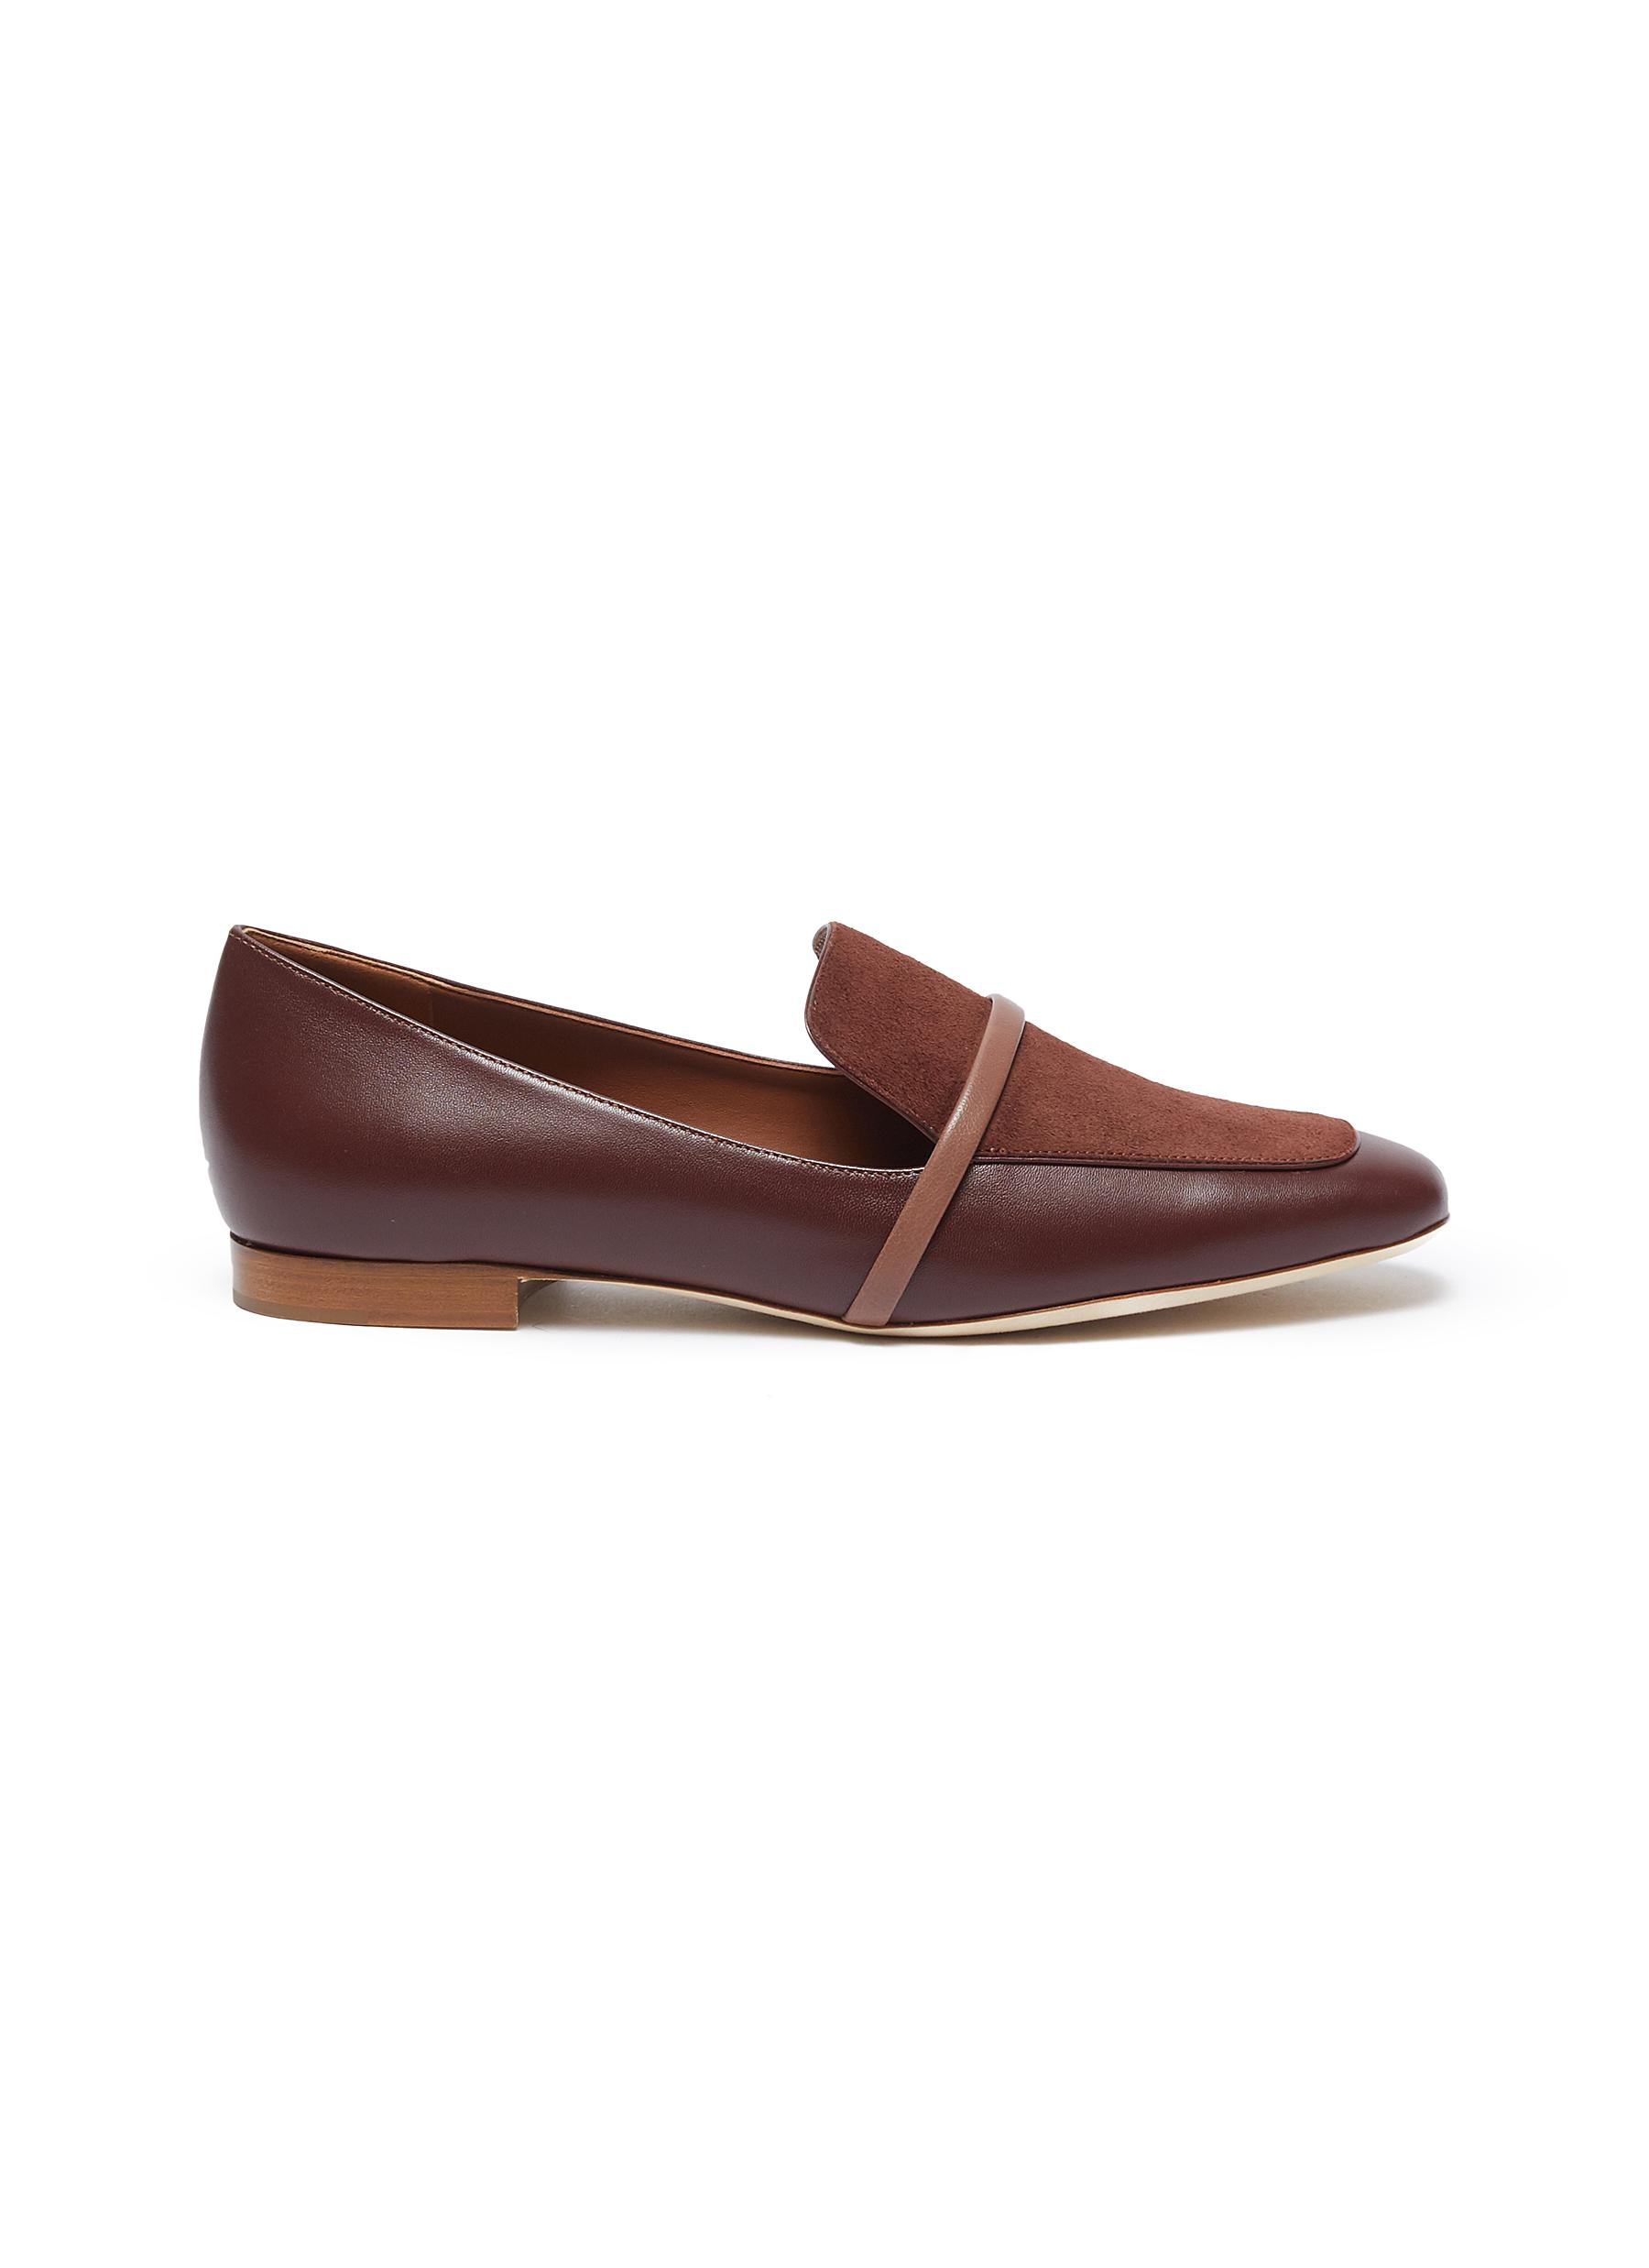 Malone Souliers Flats Jane nappa leather loafers